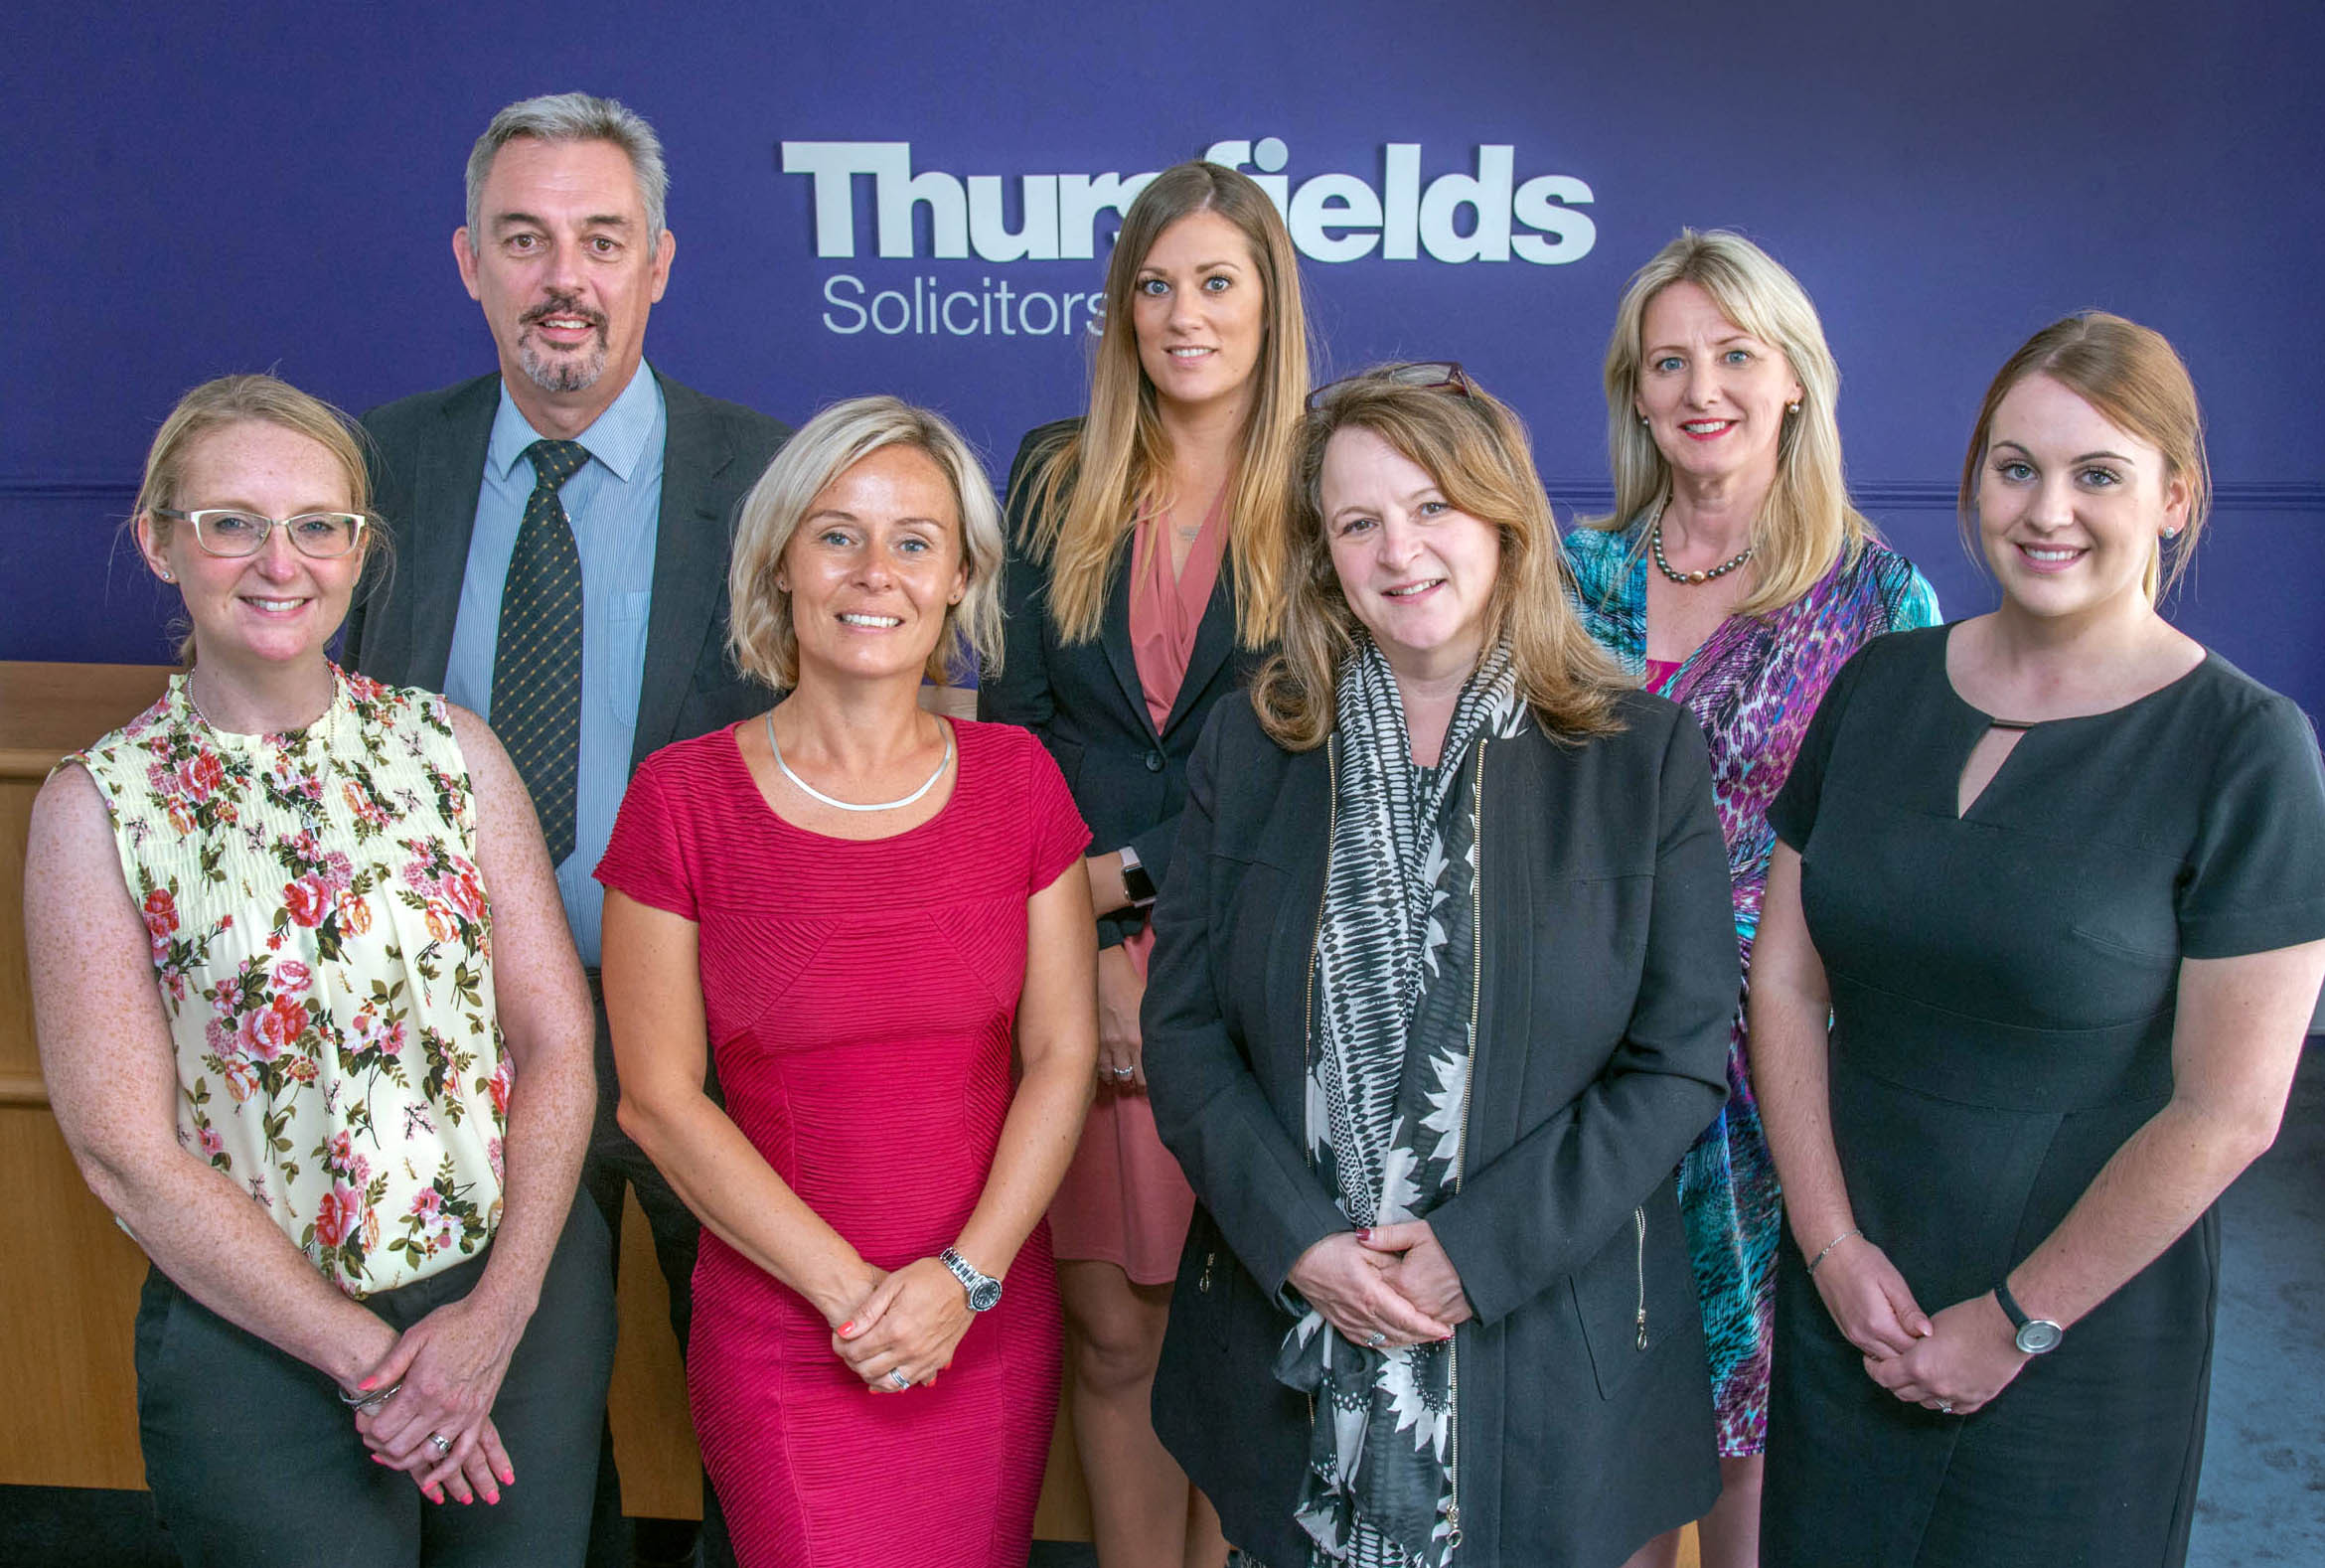 Thursfields Solicitors' Kelly Pougher, David Emery-Jones, Sarah Denney-Richards, Charlotte Perry, Mercedes King-Jones, Michelle O'Hara and Nicola Pearce. Photo: Martin Humby